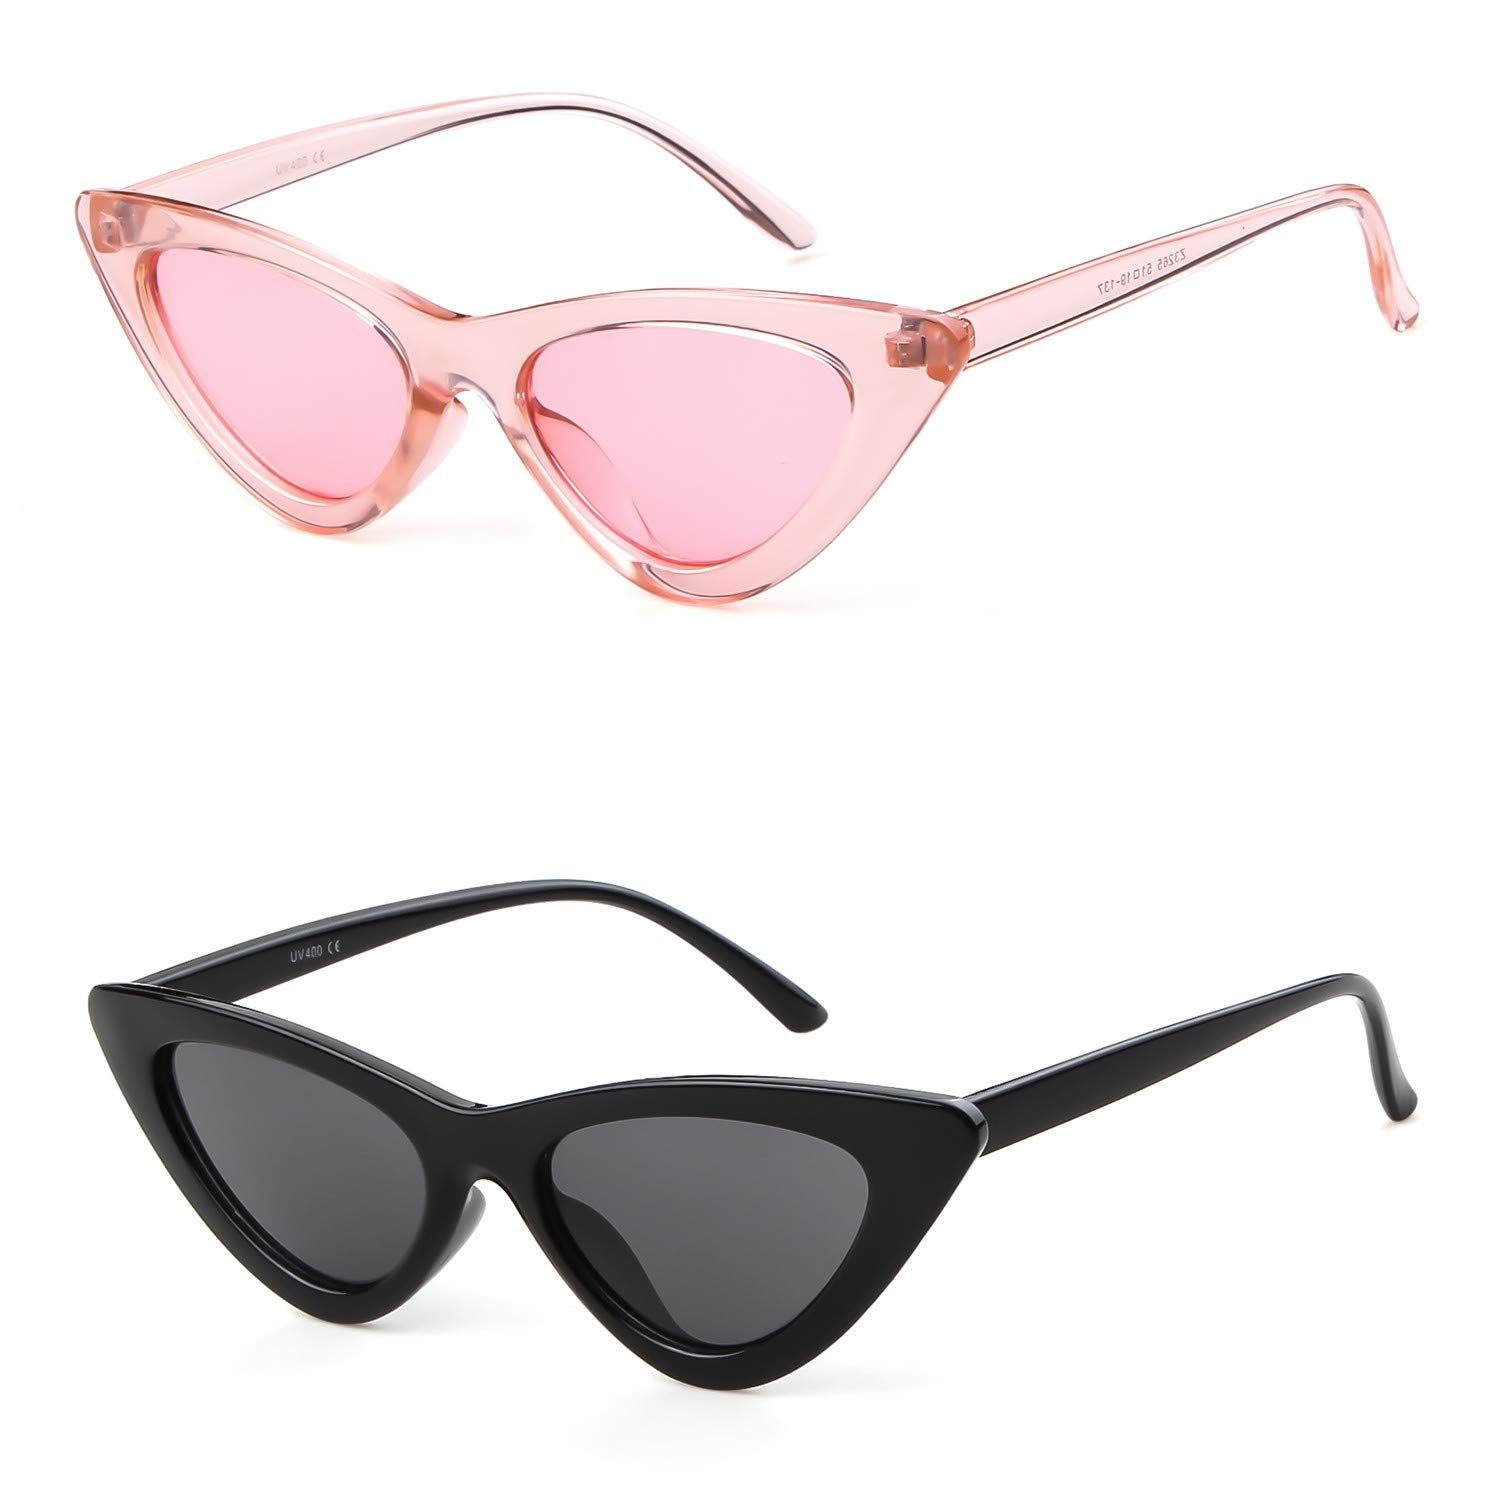 Gifiore Retro Vintage Cateye Sunglasses for Women Clout Goggles Plastic Frame Glasses